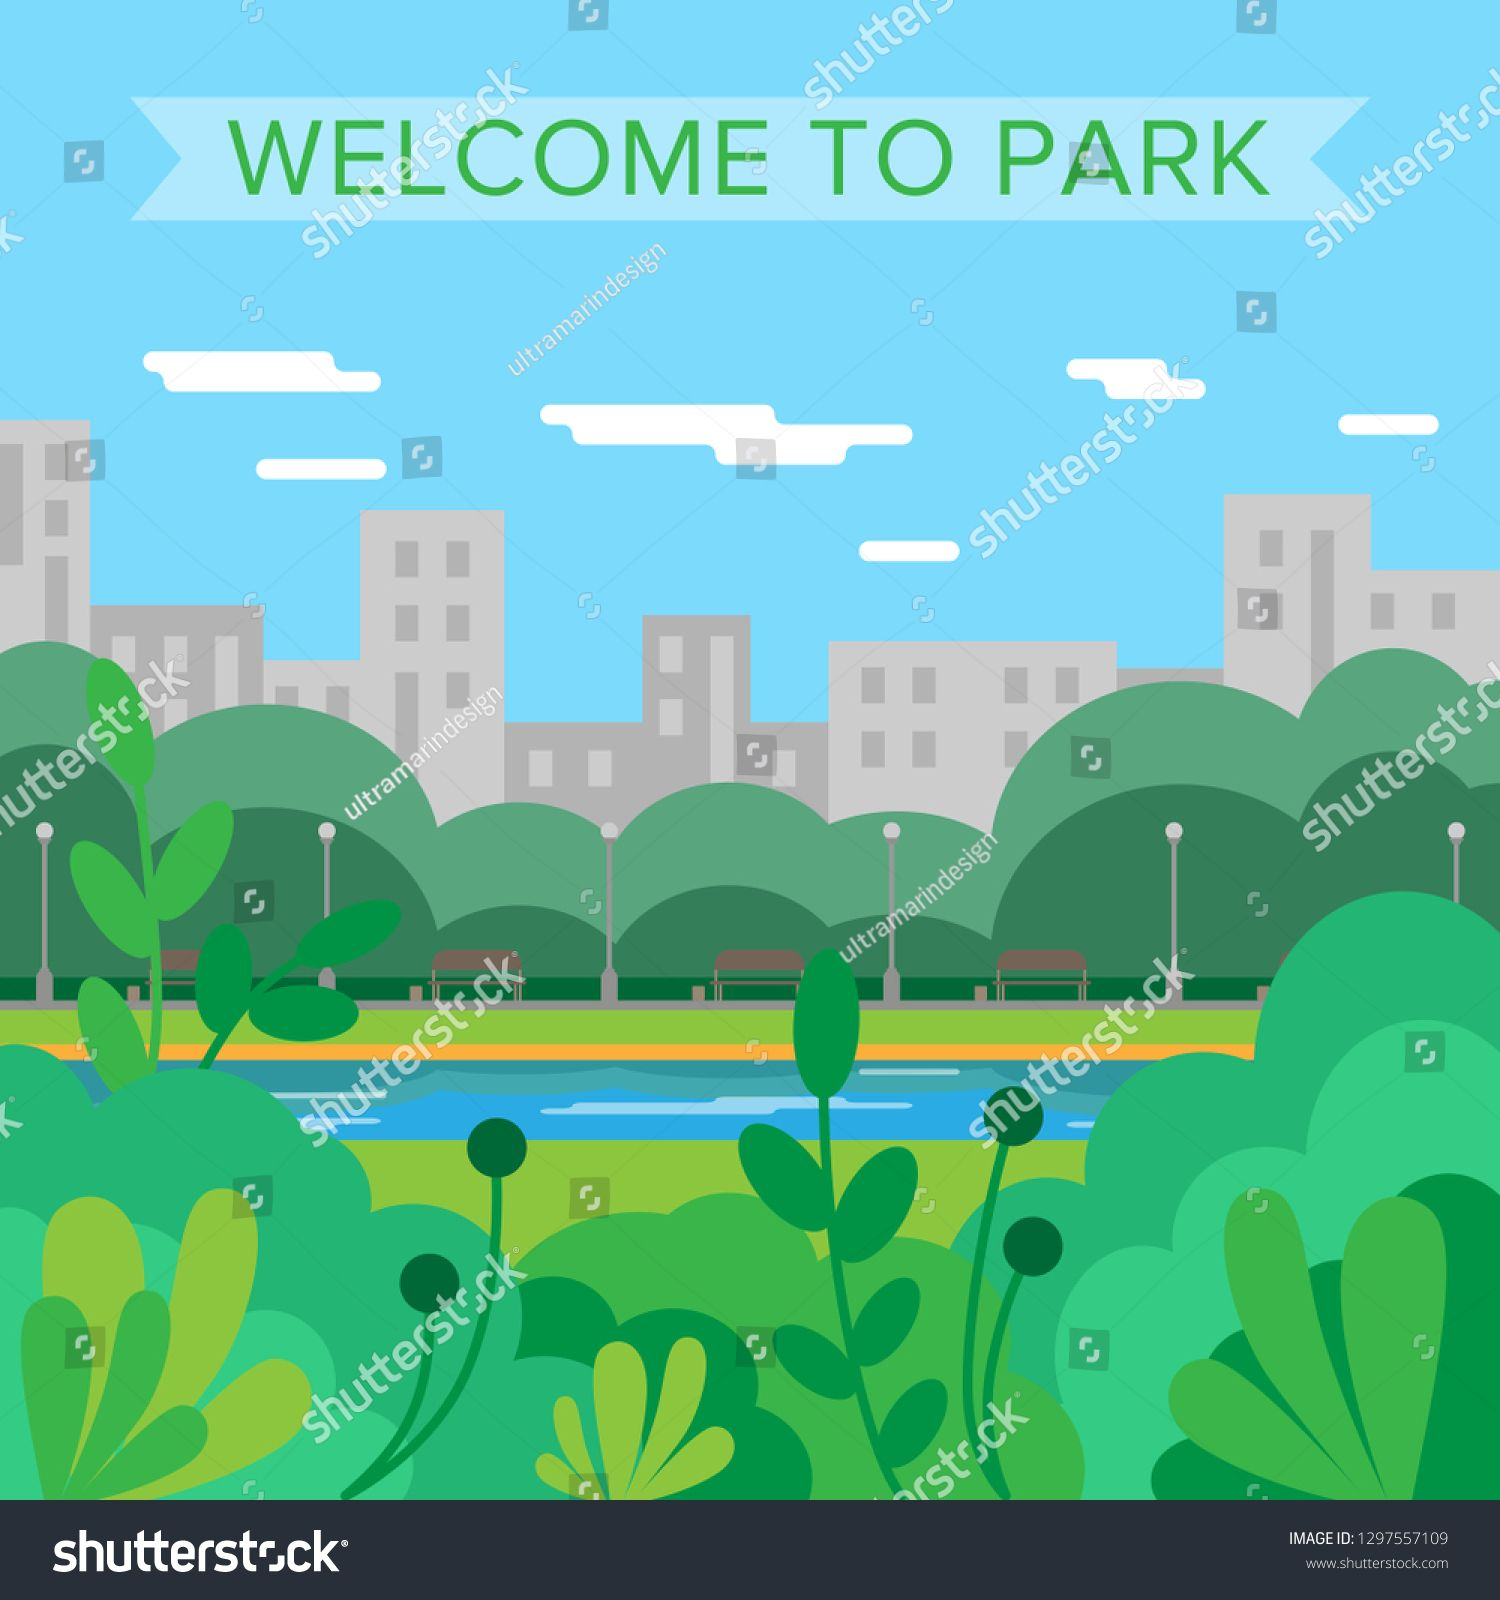 Welcome To Park Vector Background City Park Nature Summer Sponsored Affiliate Background Vector Park Summer Vector Background Park City Background